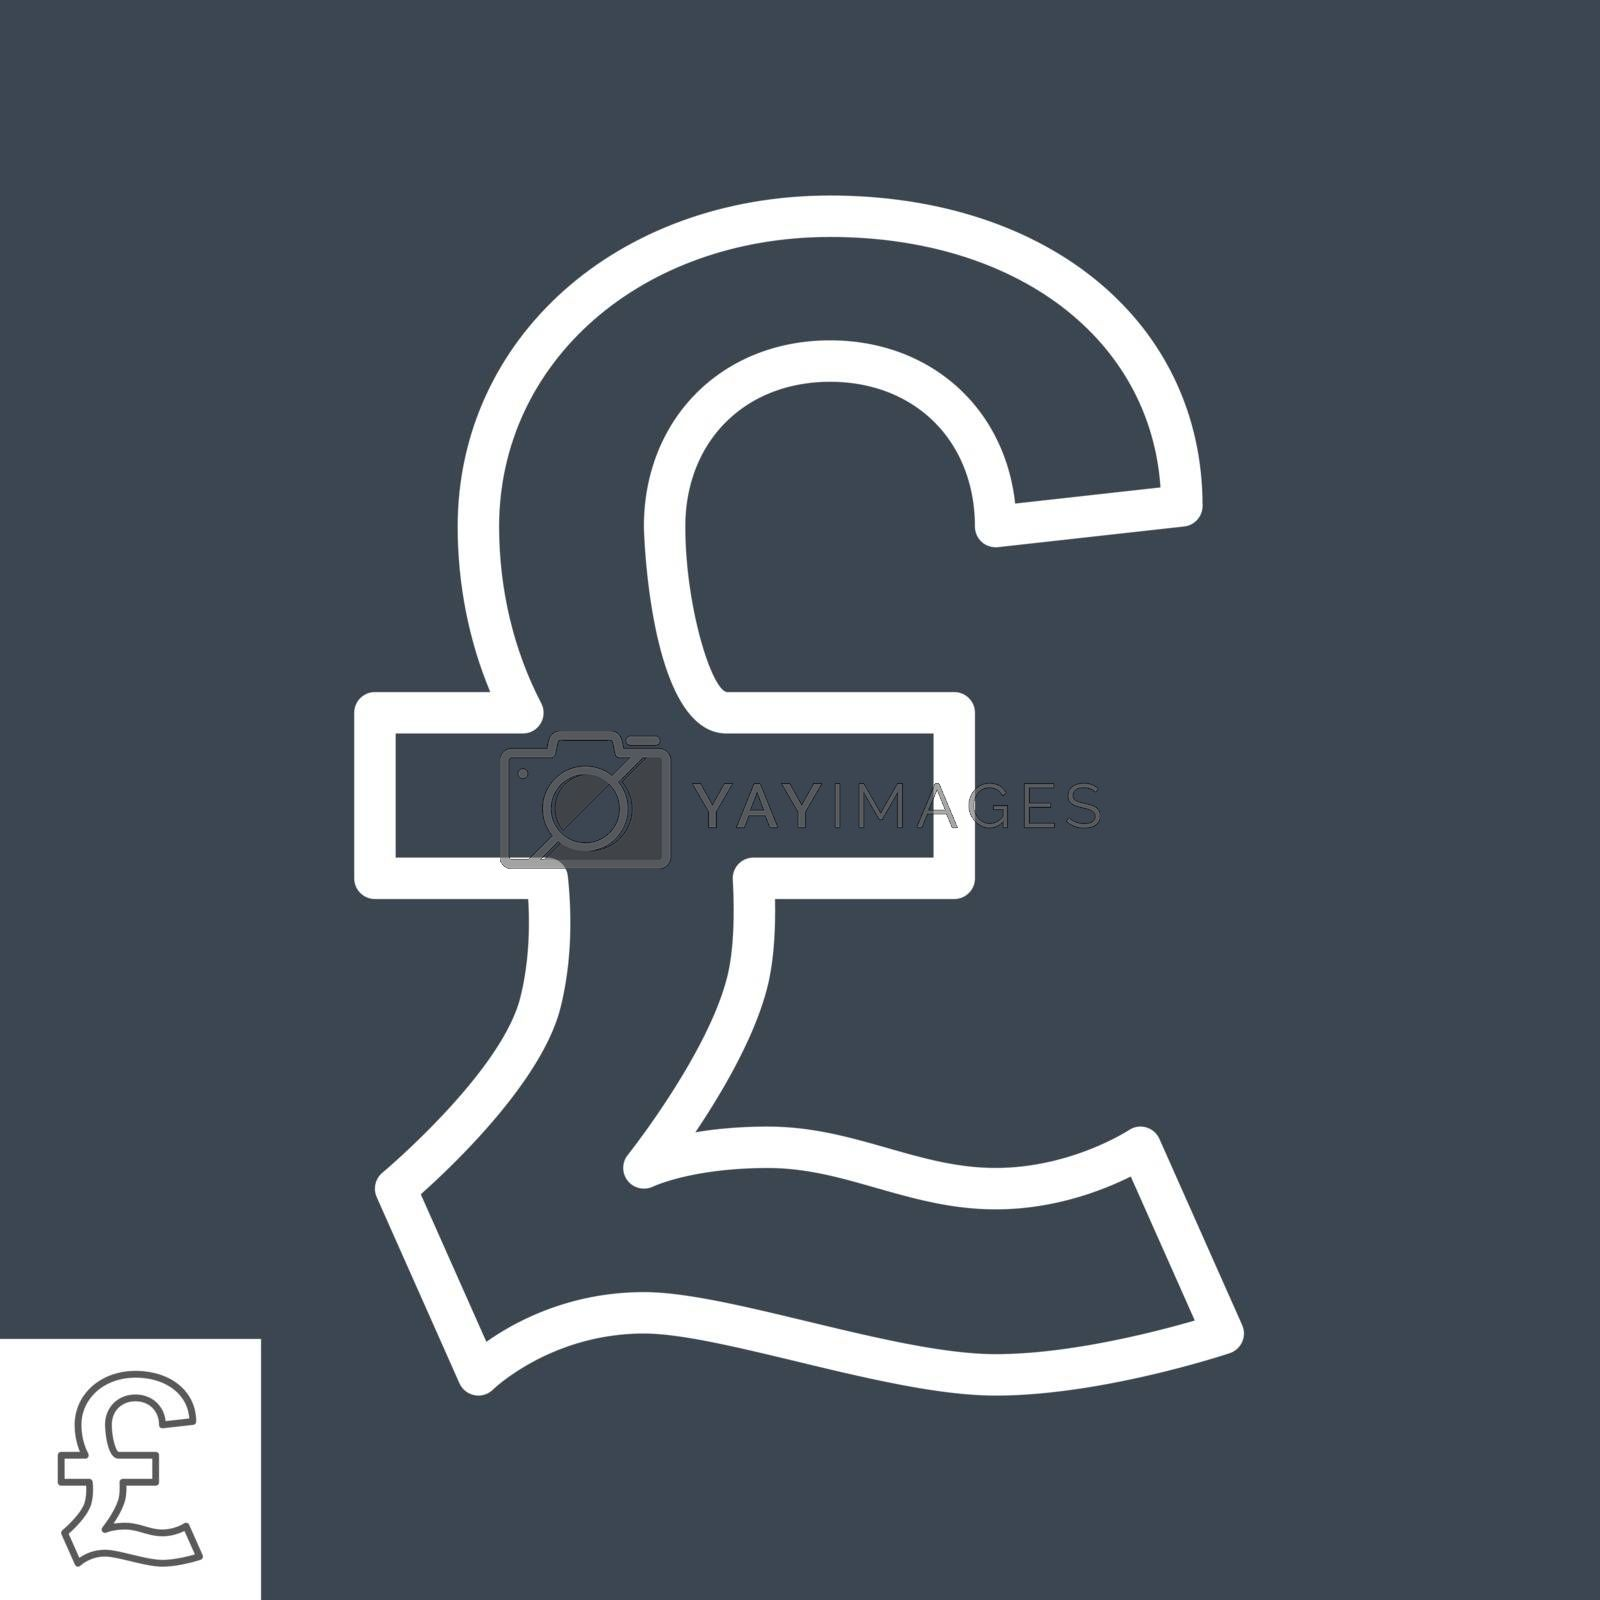 Pound Thin Line Vector Icon. Flat icon isolated on the black background. Editable EPS file. Vector illustration.